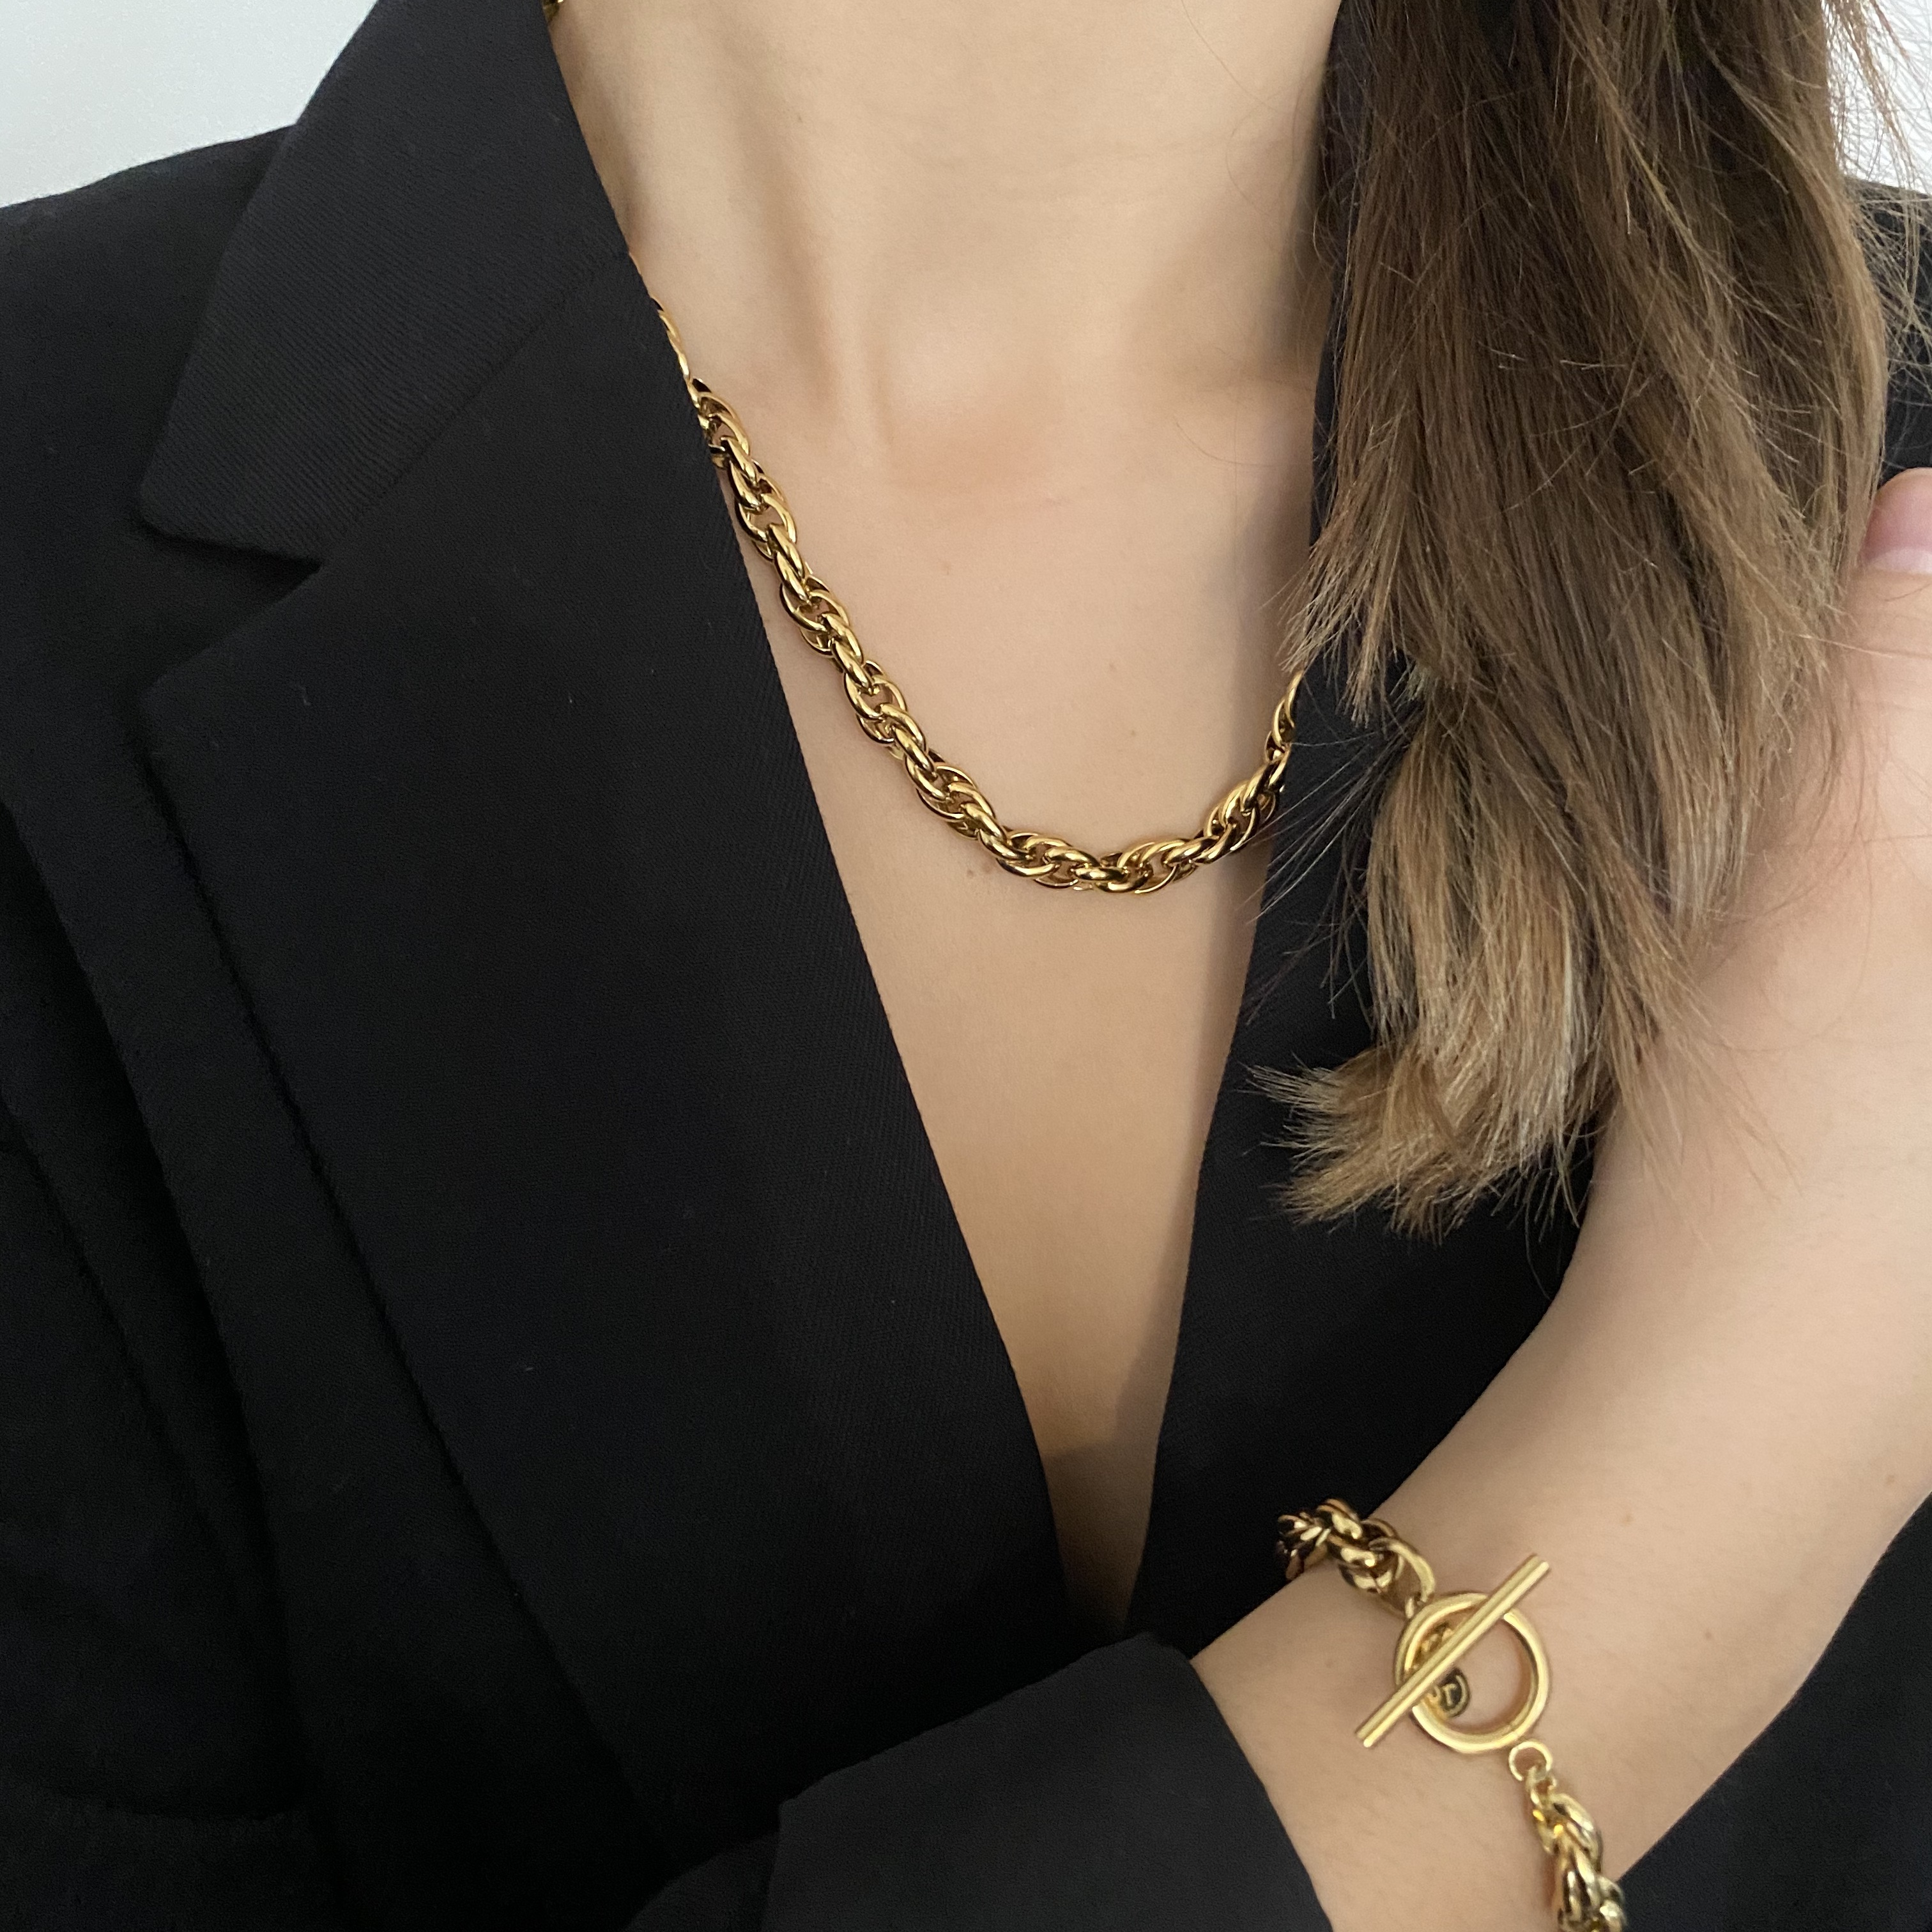 Chain Kette Gold